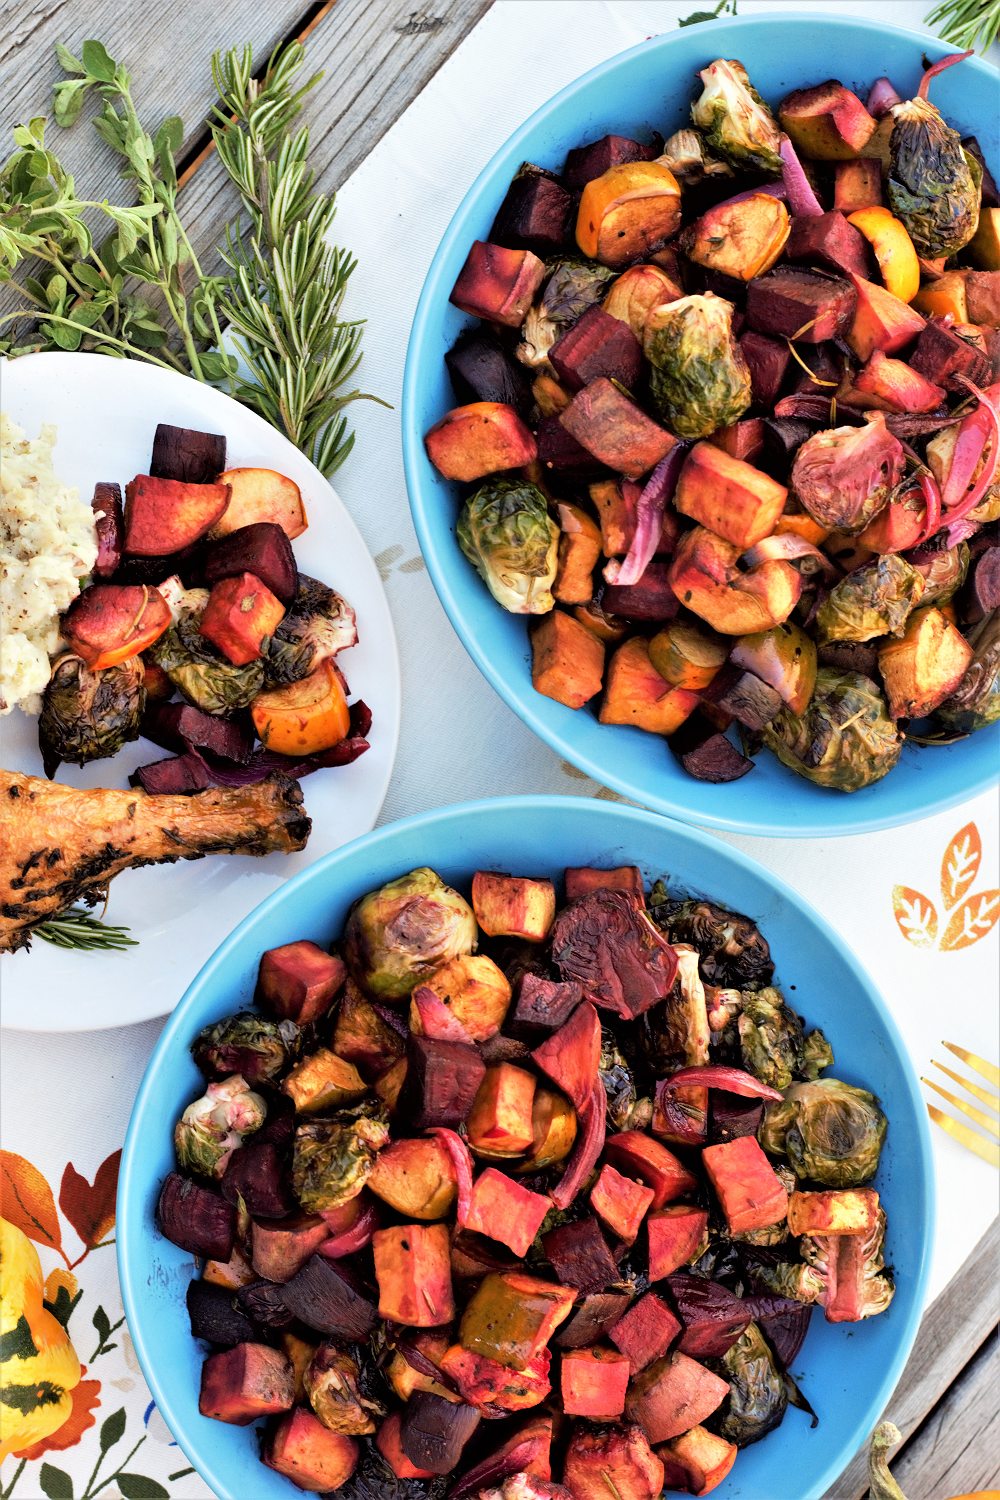 Maple Balsamic Roasted Veggies